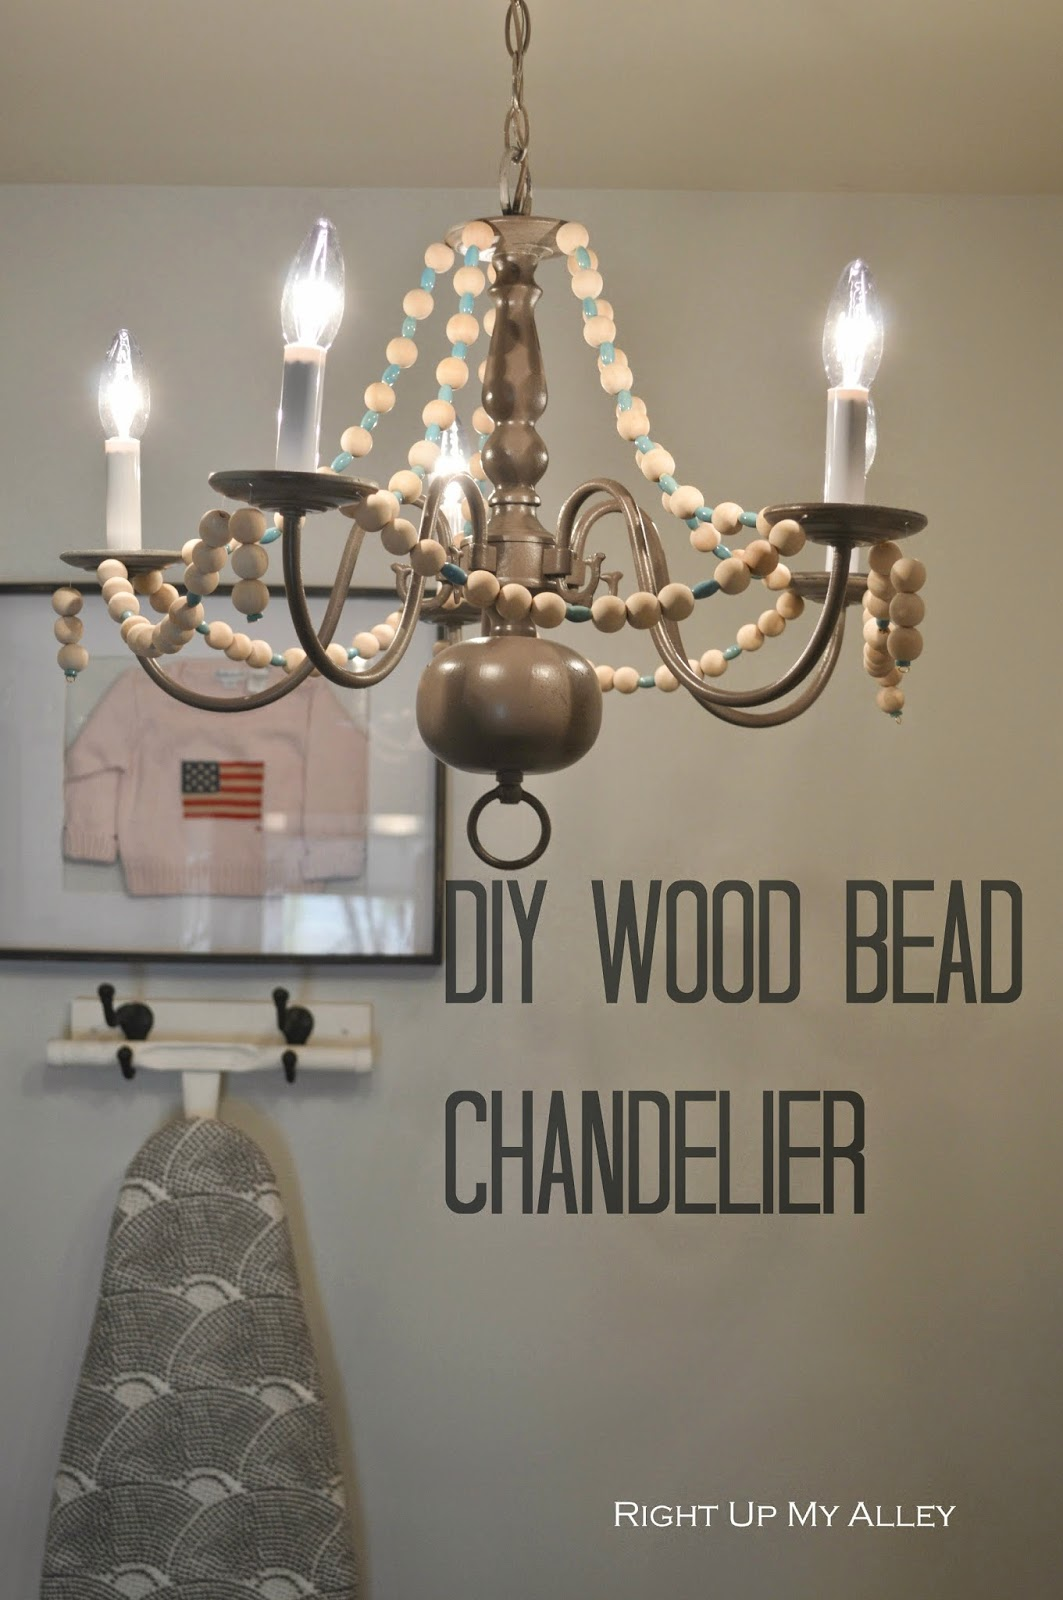 Right up my alley diy wood bead chandelier aloadofball Image collections